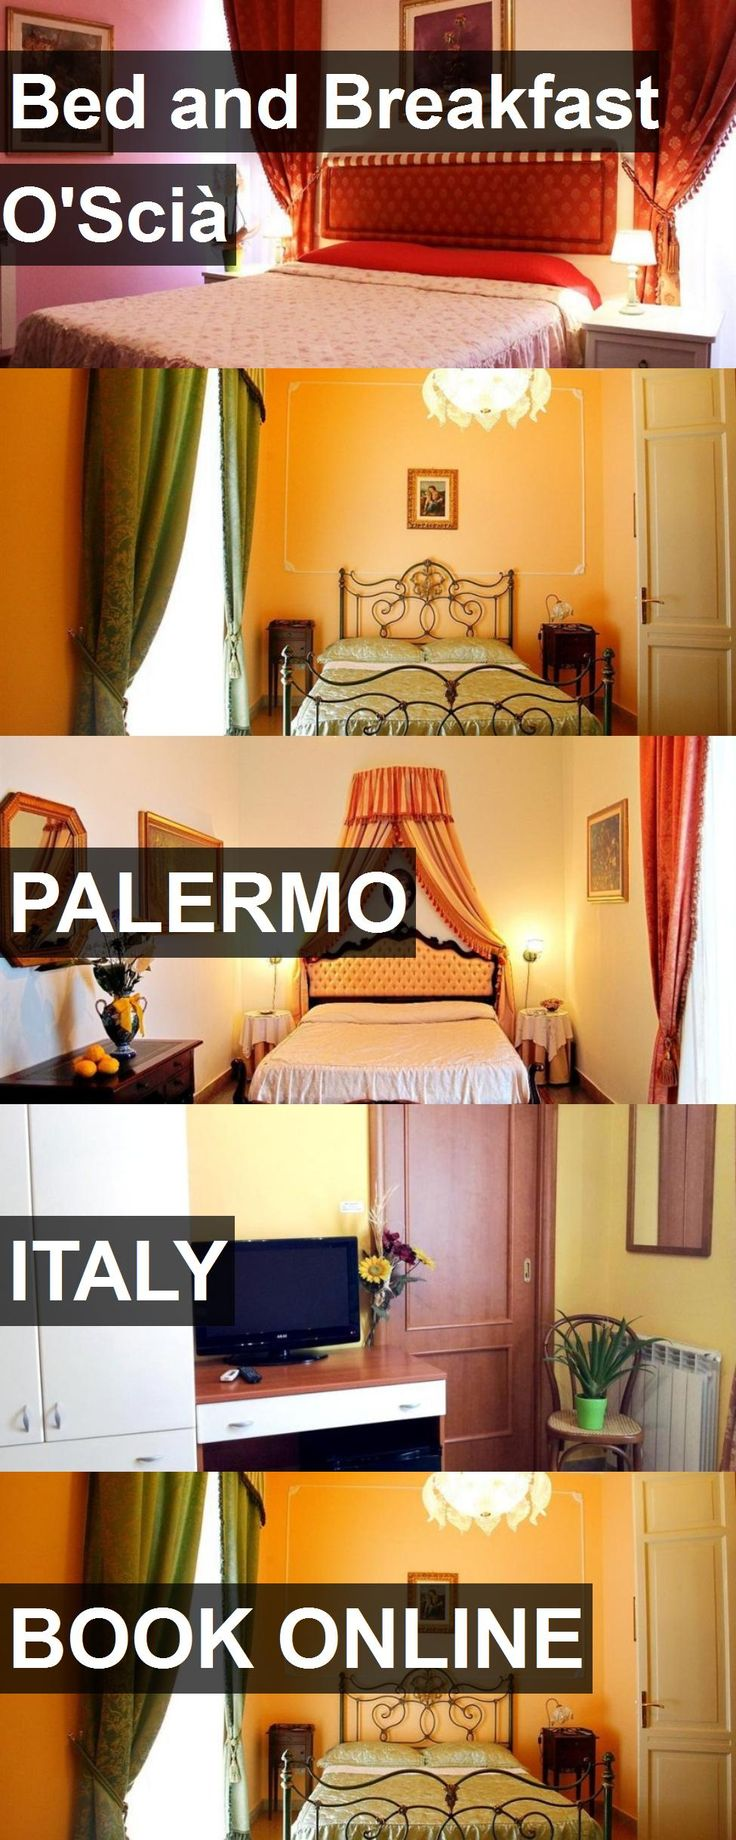 Hotel Bed and Breakfast O'Scià in Palermo, Italy. For more information, photos, reviews and best prices please follow the link. #Italy #Palermo #BedandBreakfastO'Scià #hotel #travel #vacation